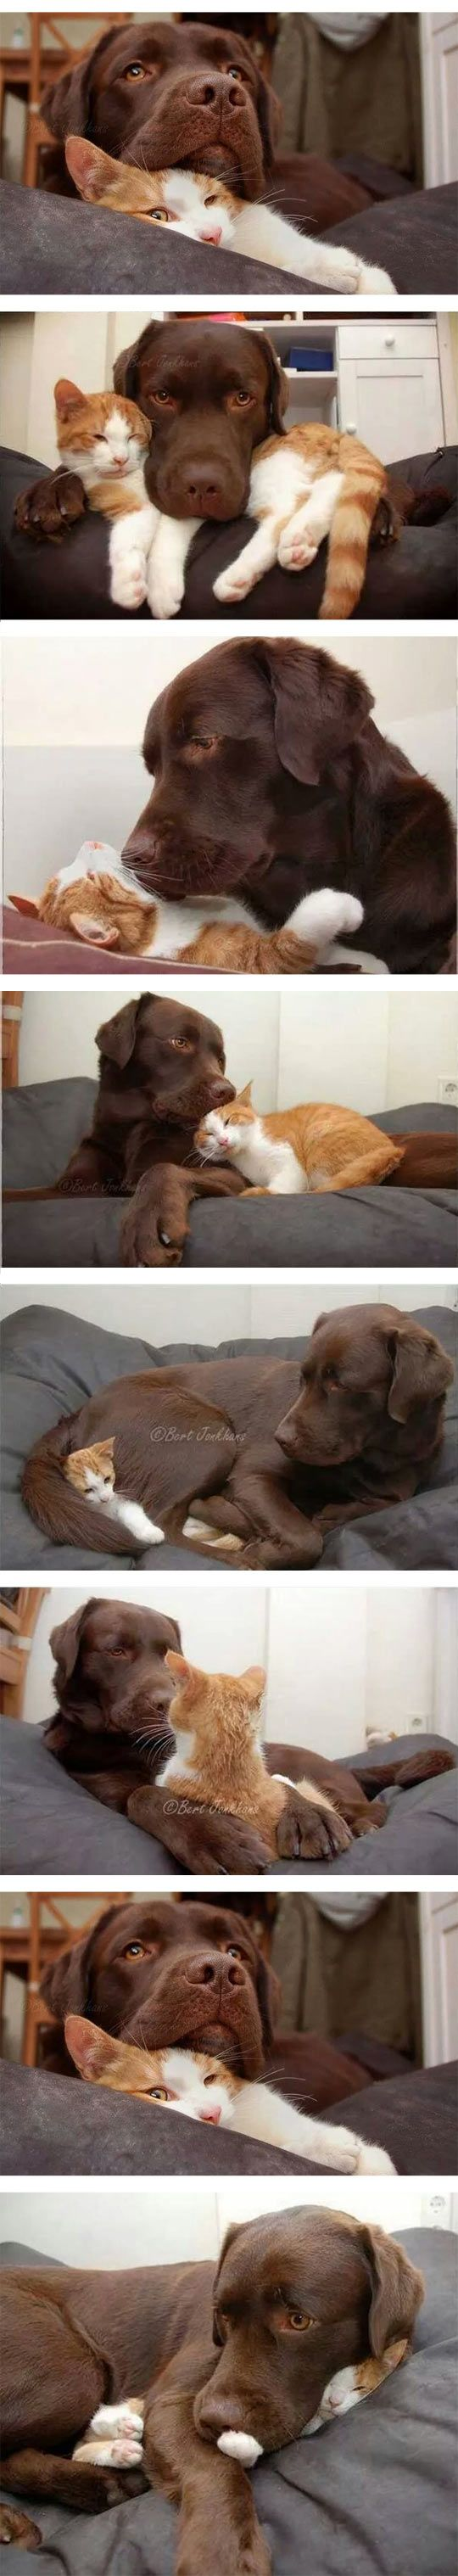 This is my ideal future pet duo, a lab and a cat that grow up together and get along =]